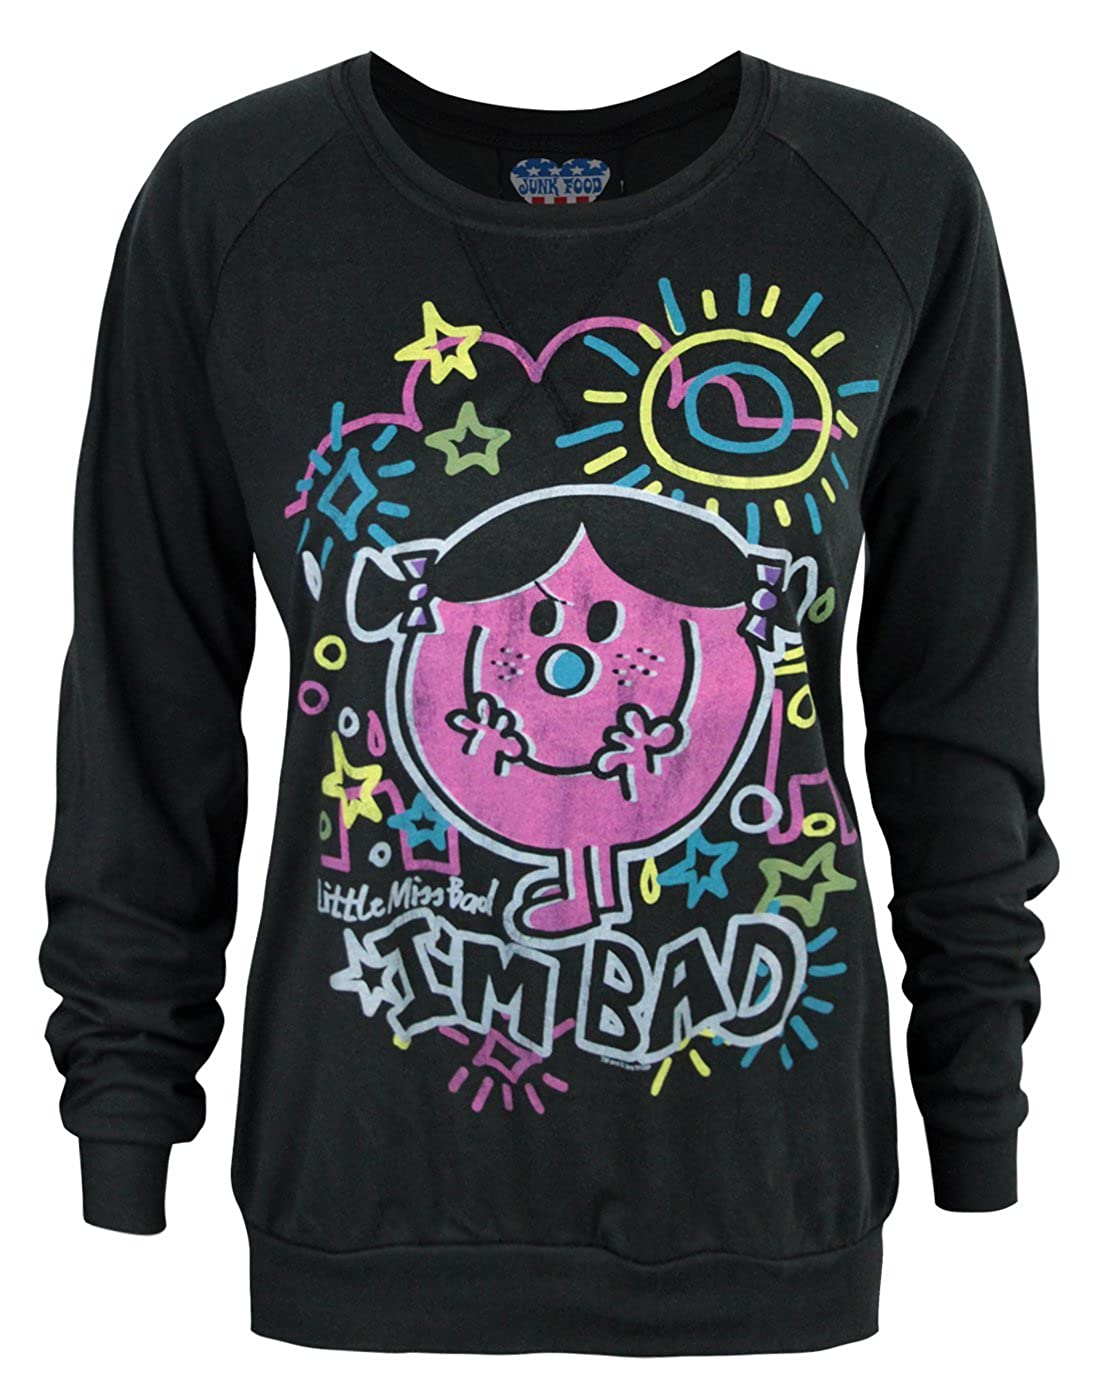 Junk Food Little Miss Bad Women's Sweater (S) Junk Food Clothing